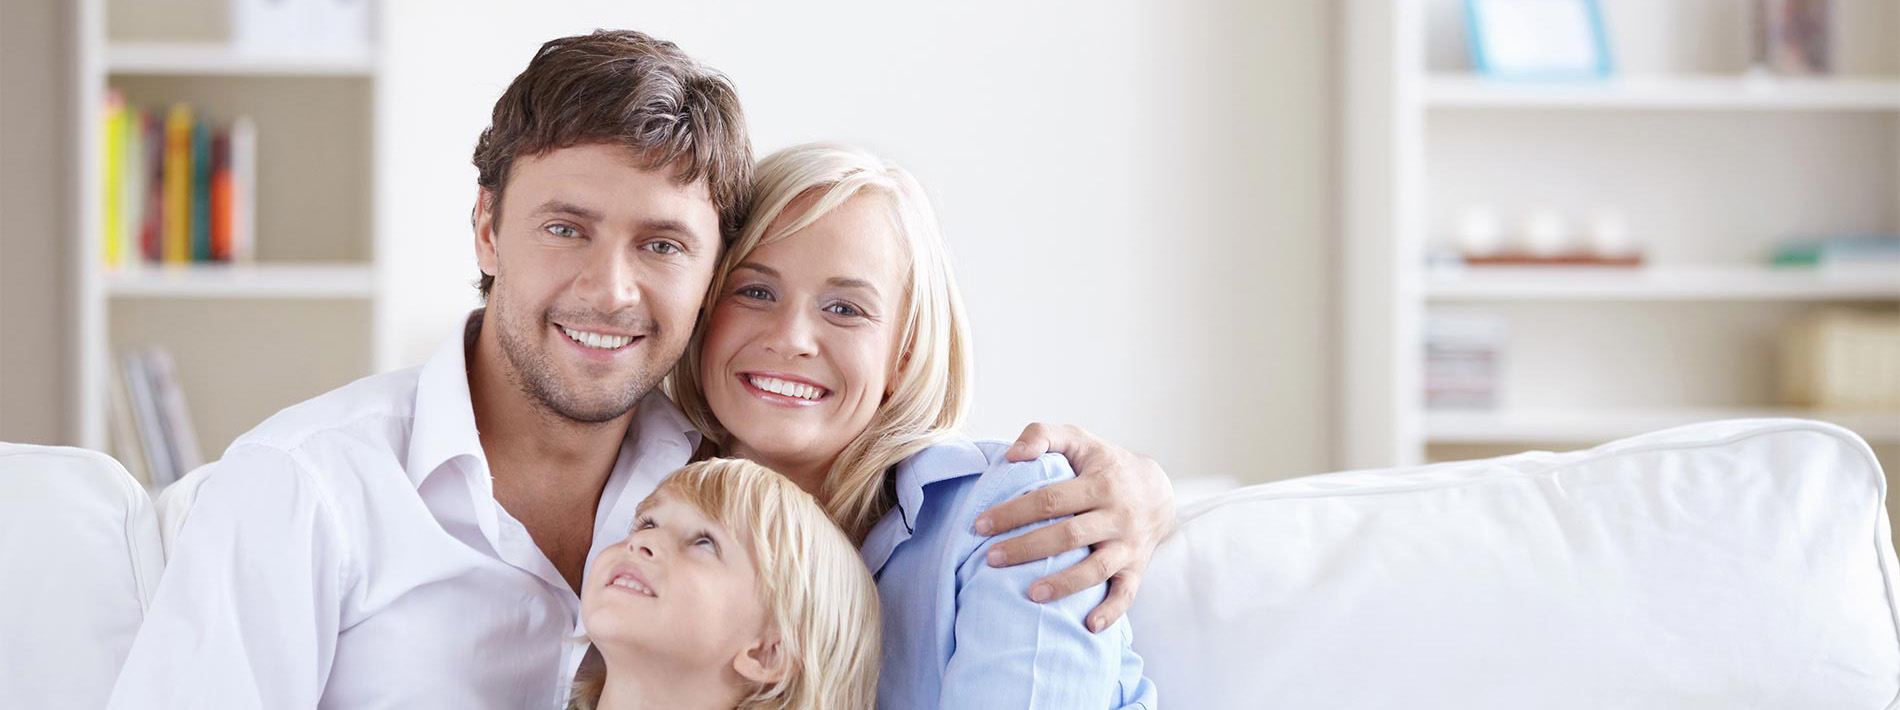 smiling-family-cropped